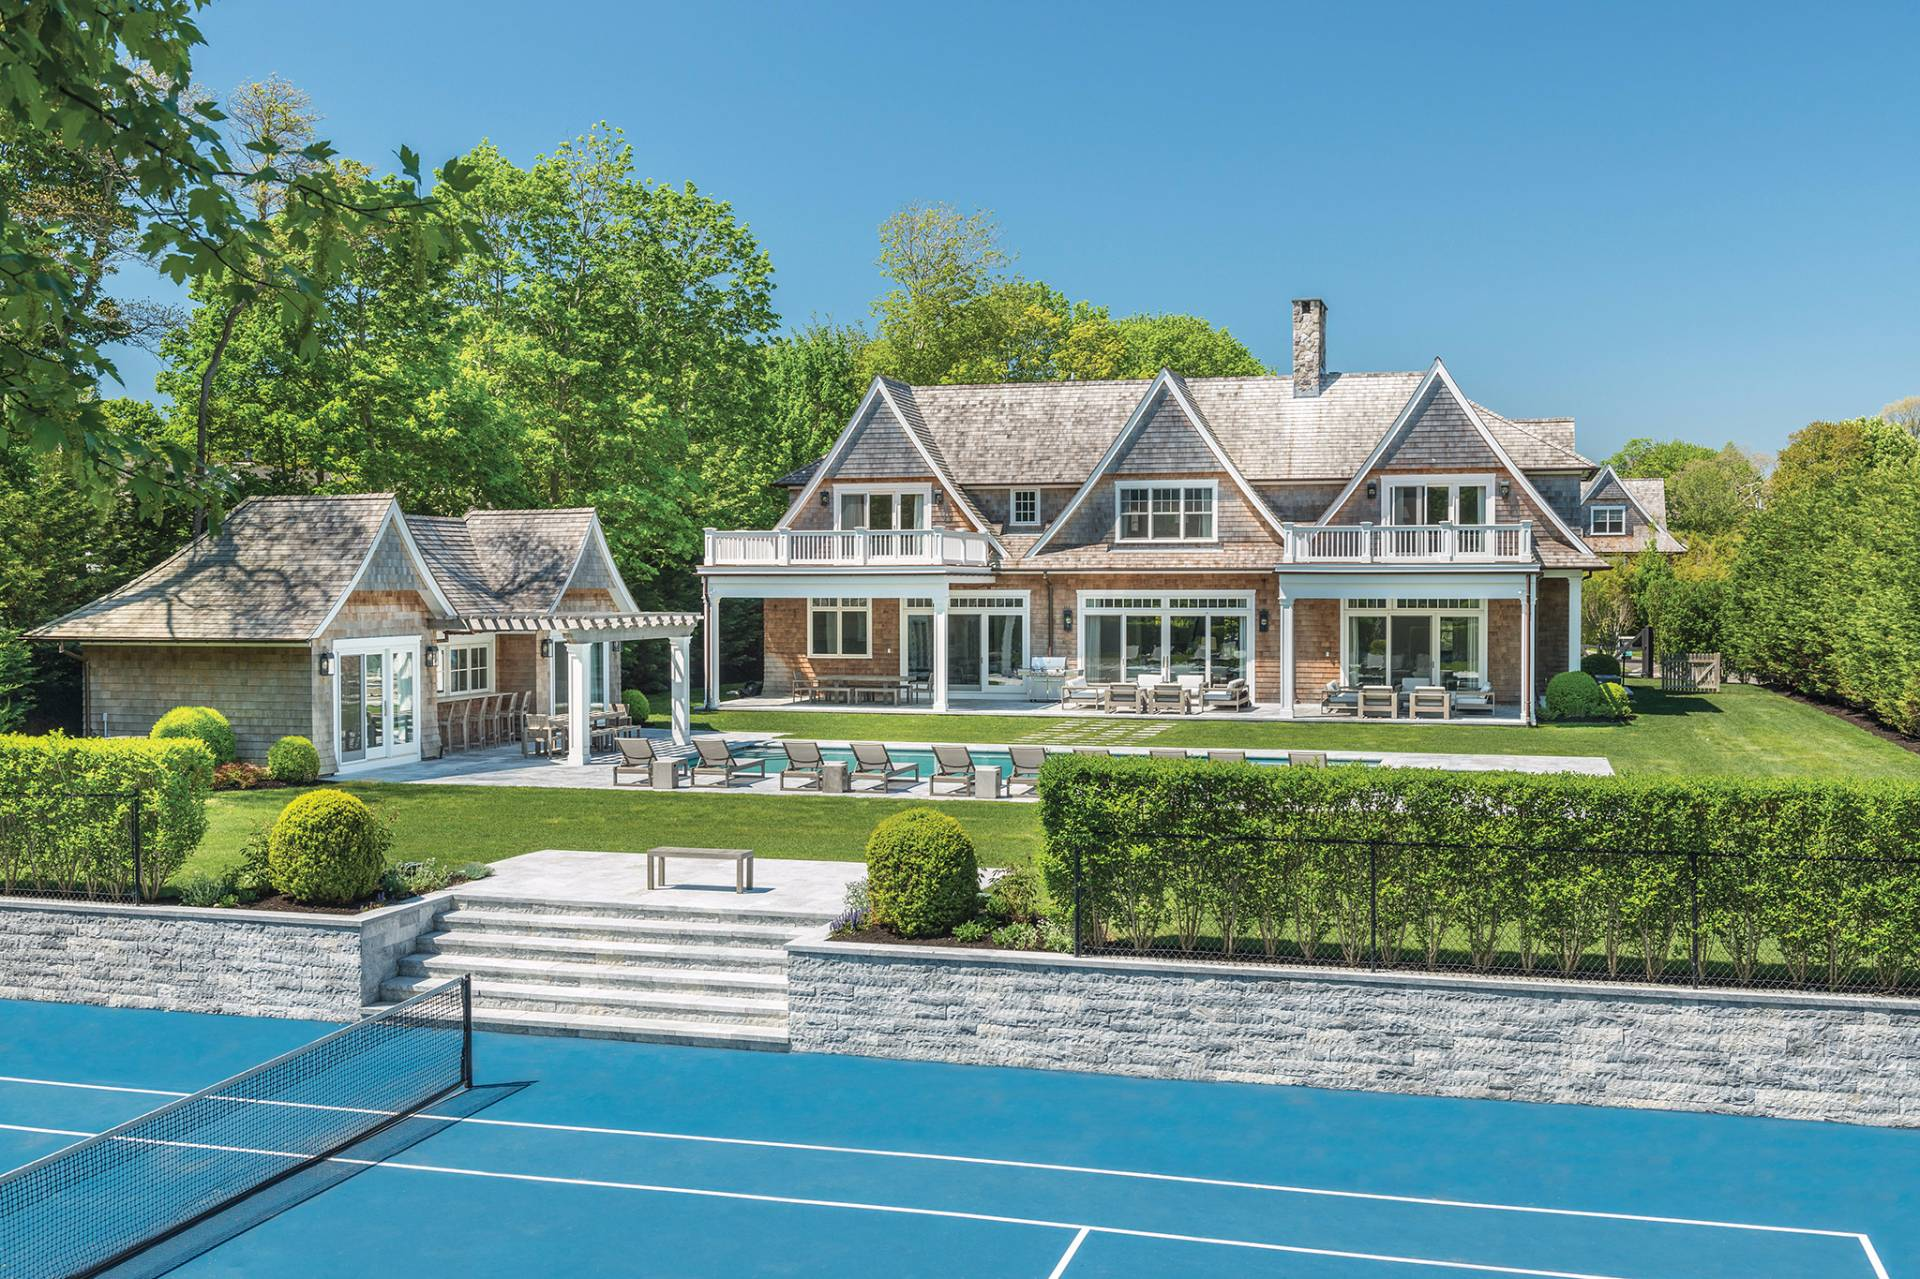 Single Family Home for Sale at Rare Grand Village Estate Moments To Town And Beaches 3 Sayres Court, Bridgehampton, New York